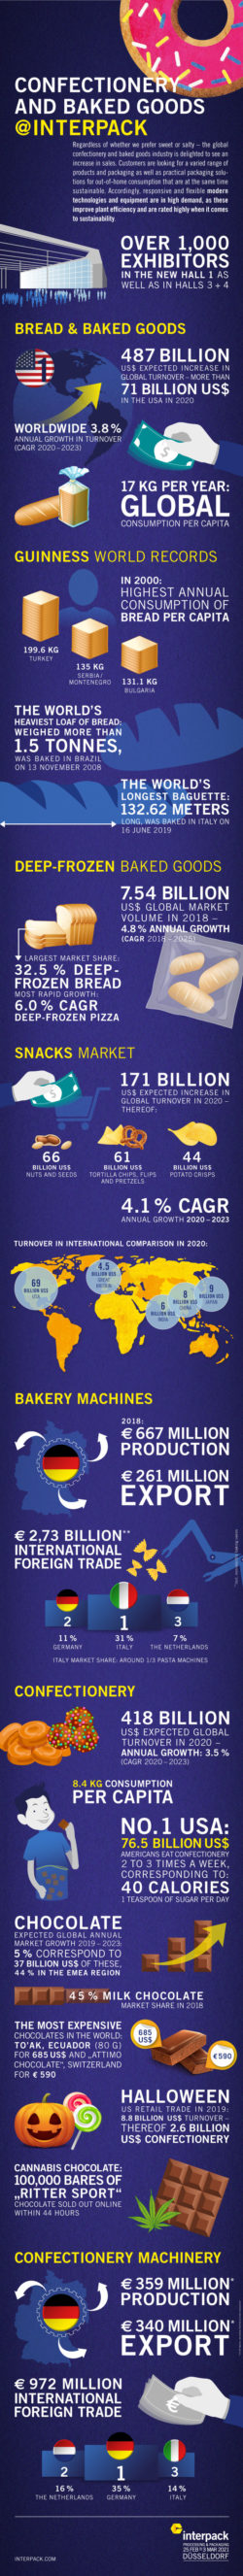 Graphic: Number of the Month Confectionery and Baked Goods 2020